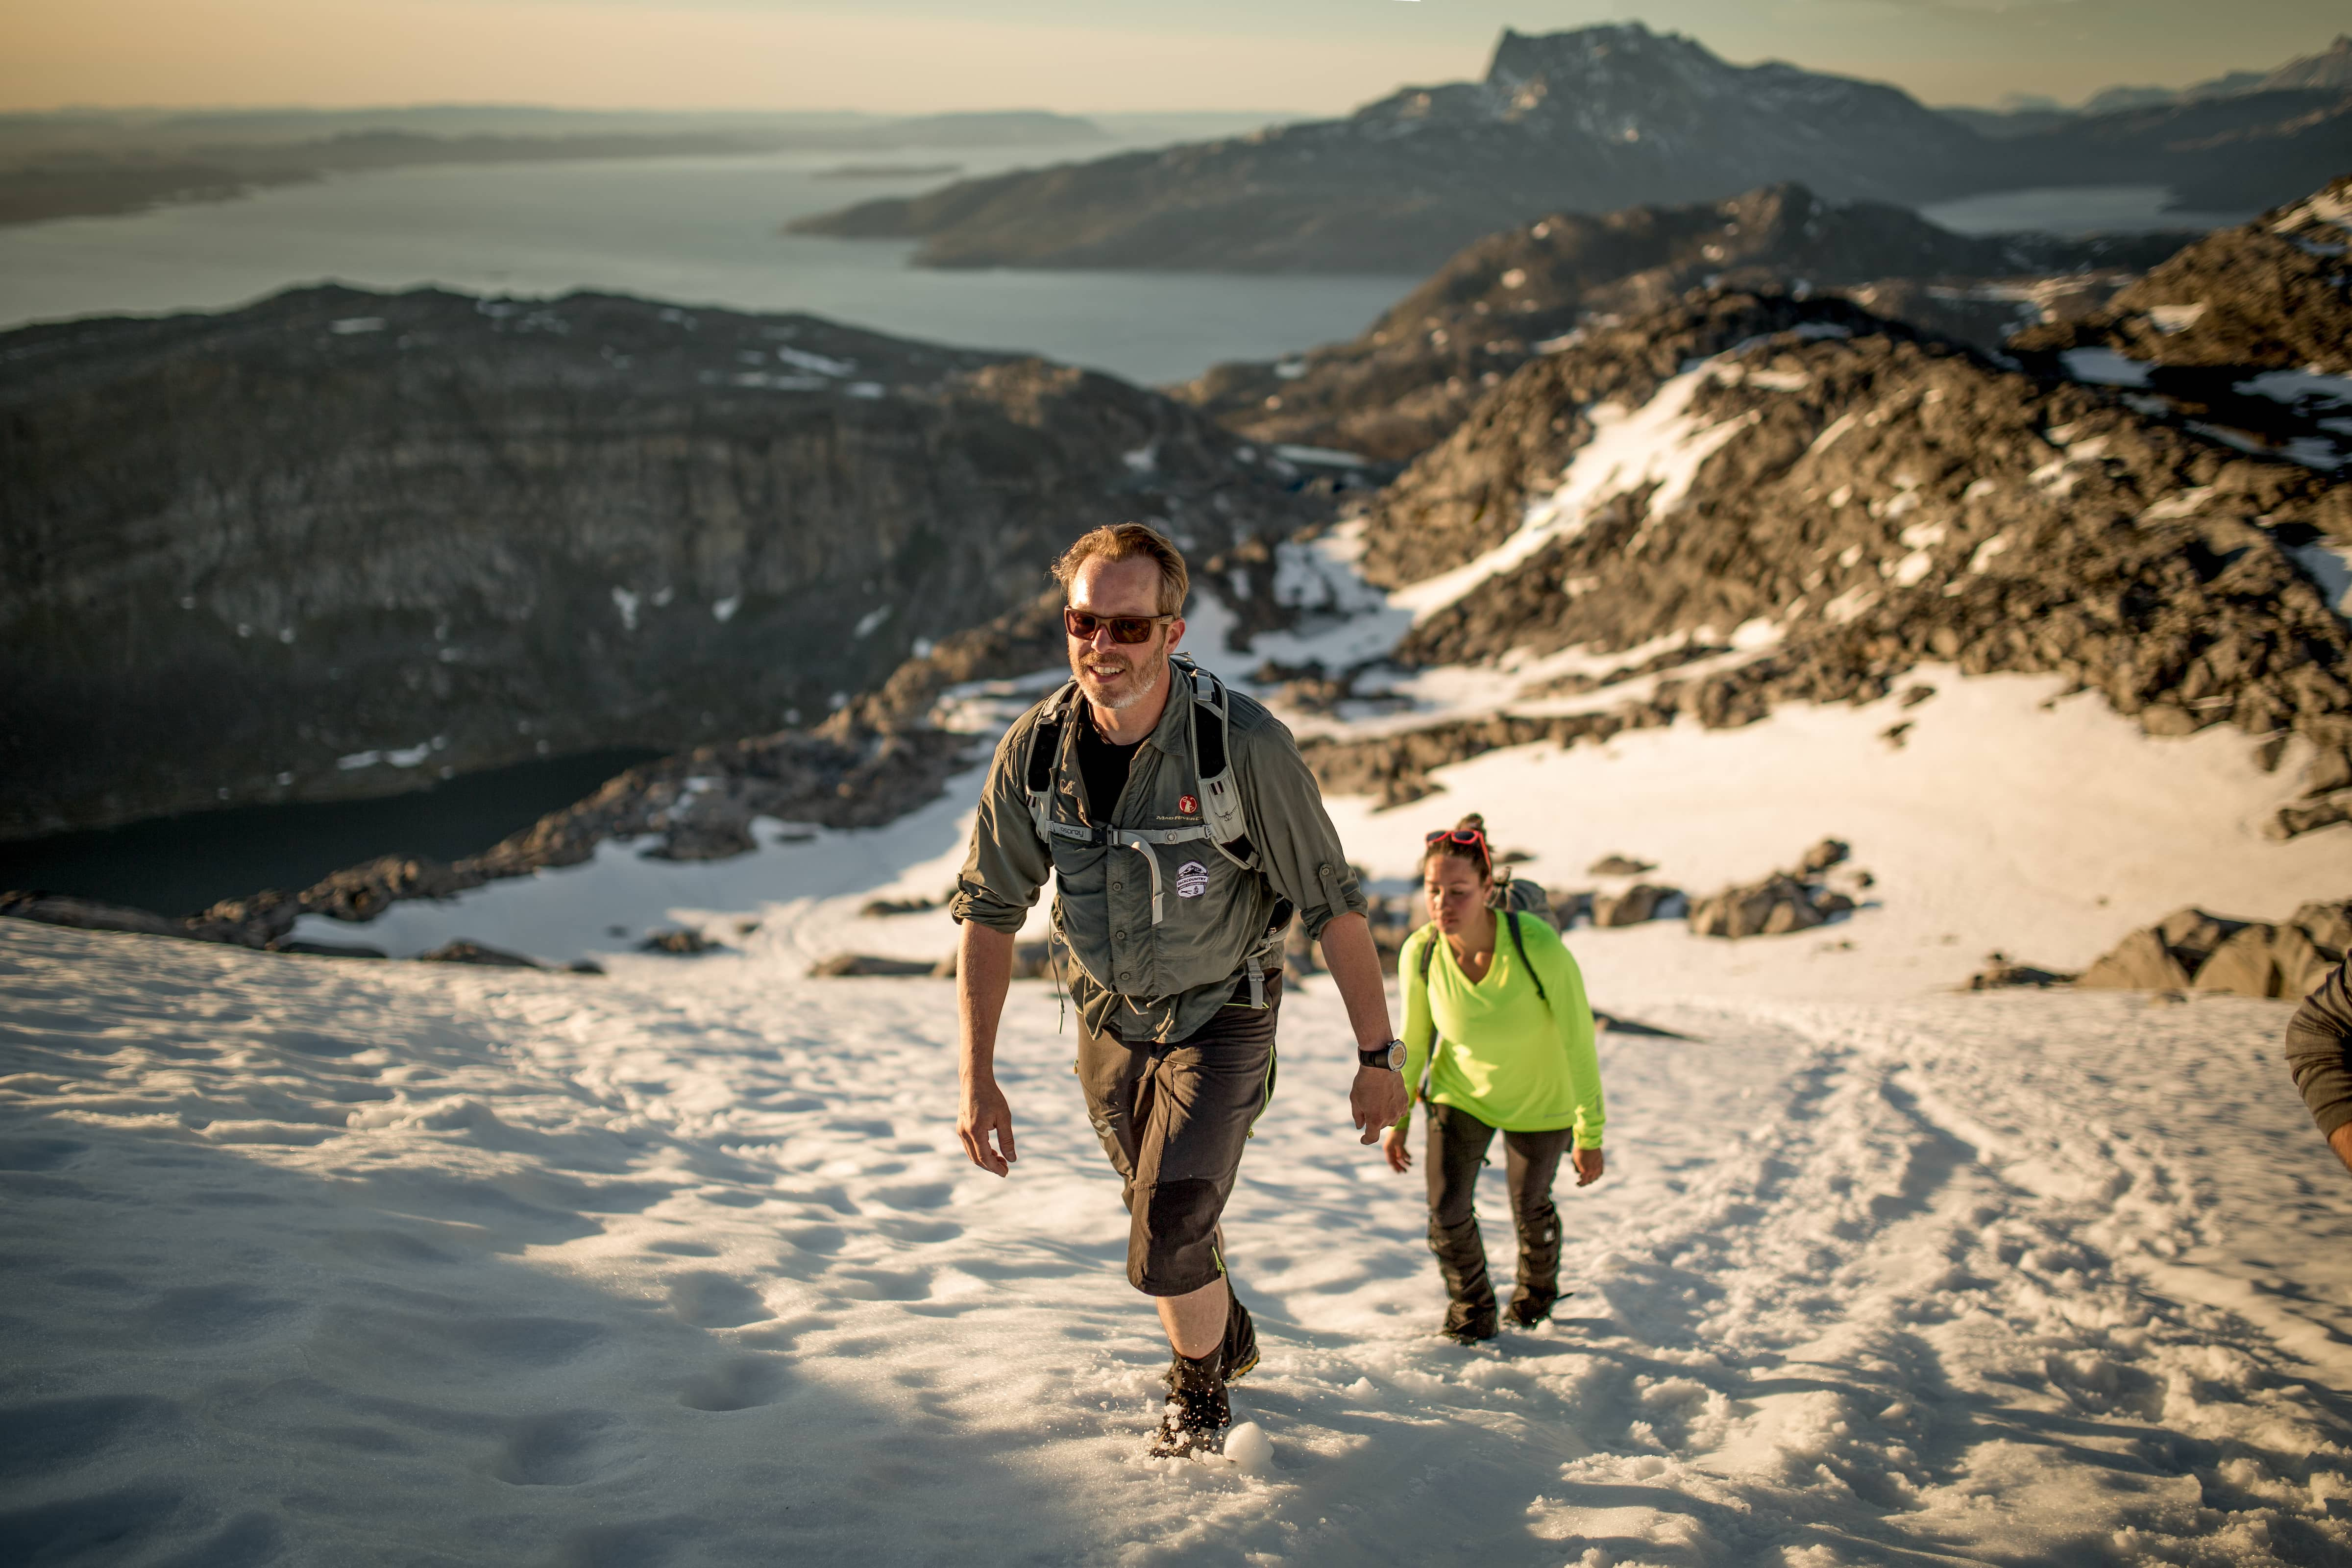 Two hikers on a slope of summer snow ascending Ukkusissaq - Store Malene outside Nuuk in Greenland